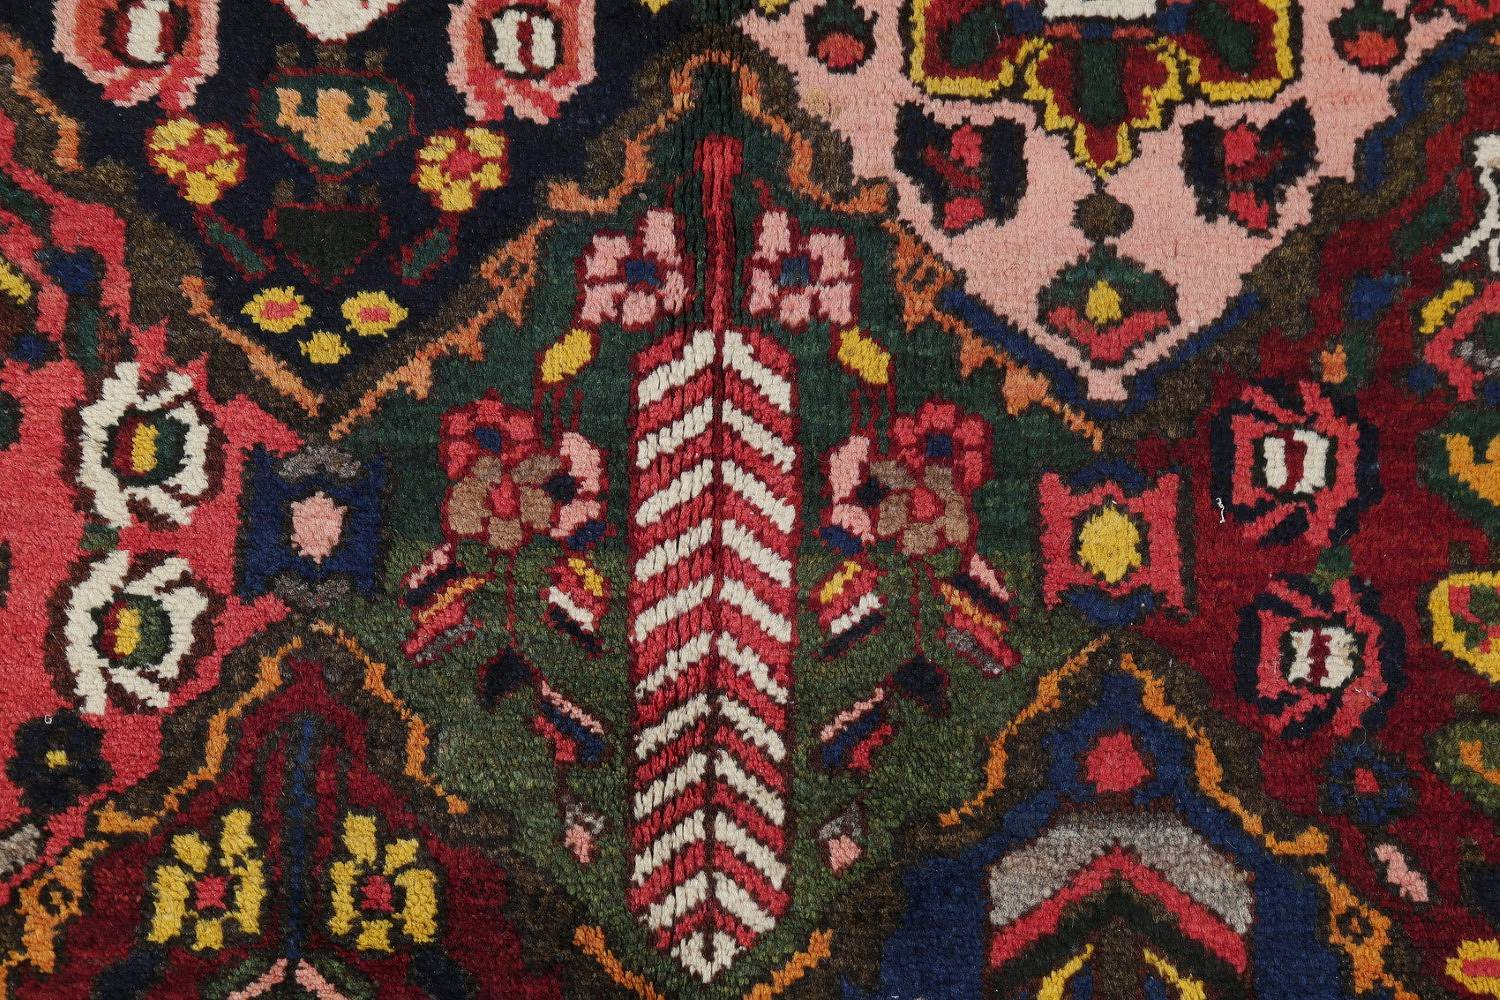 Antique Vegetable Dye Bakhtiari Persian Hand-Knotted Area Rug 7x12 image 10